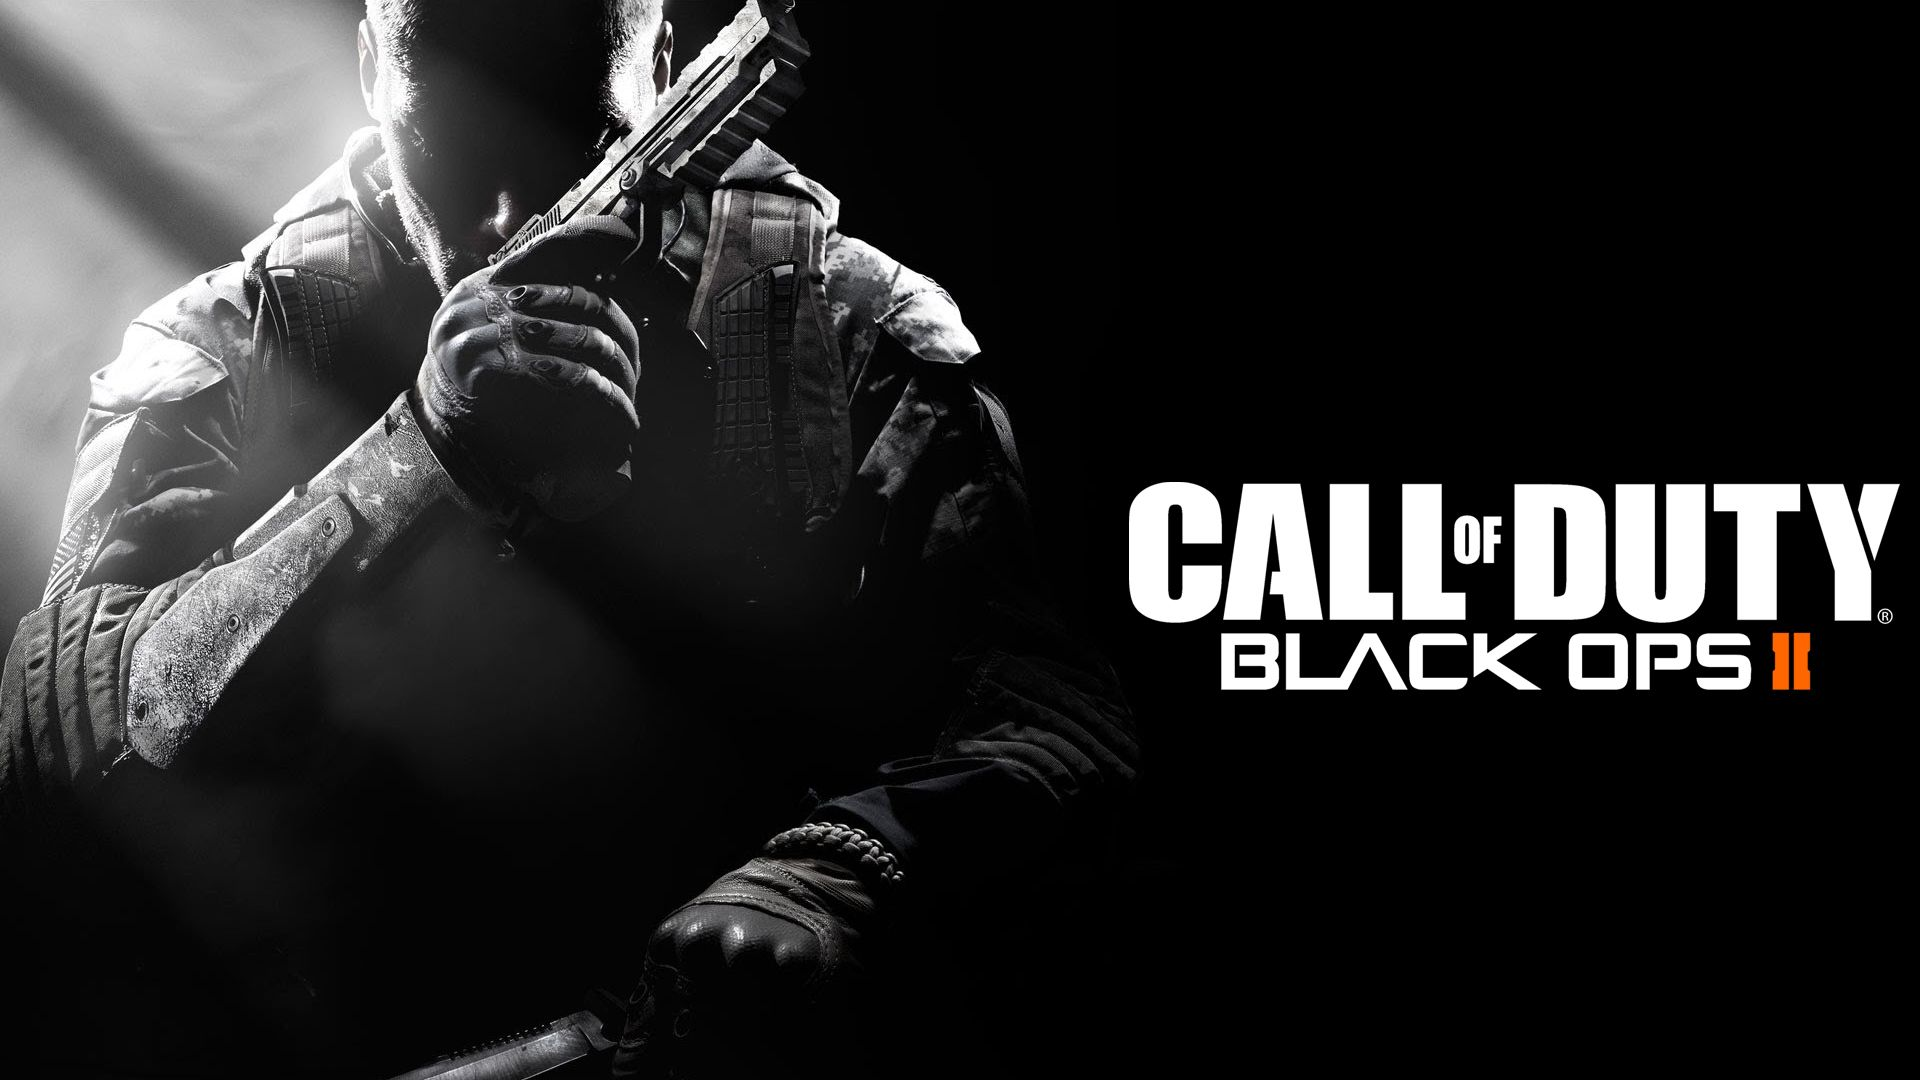 Former Dictator Suing Activision Over Black Ops Ii